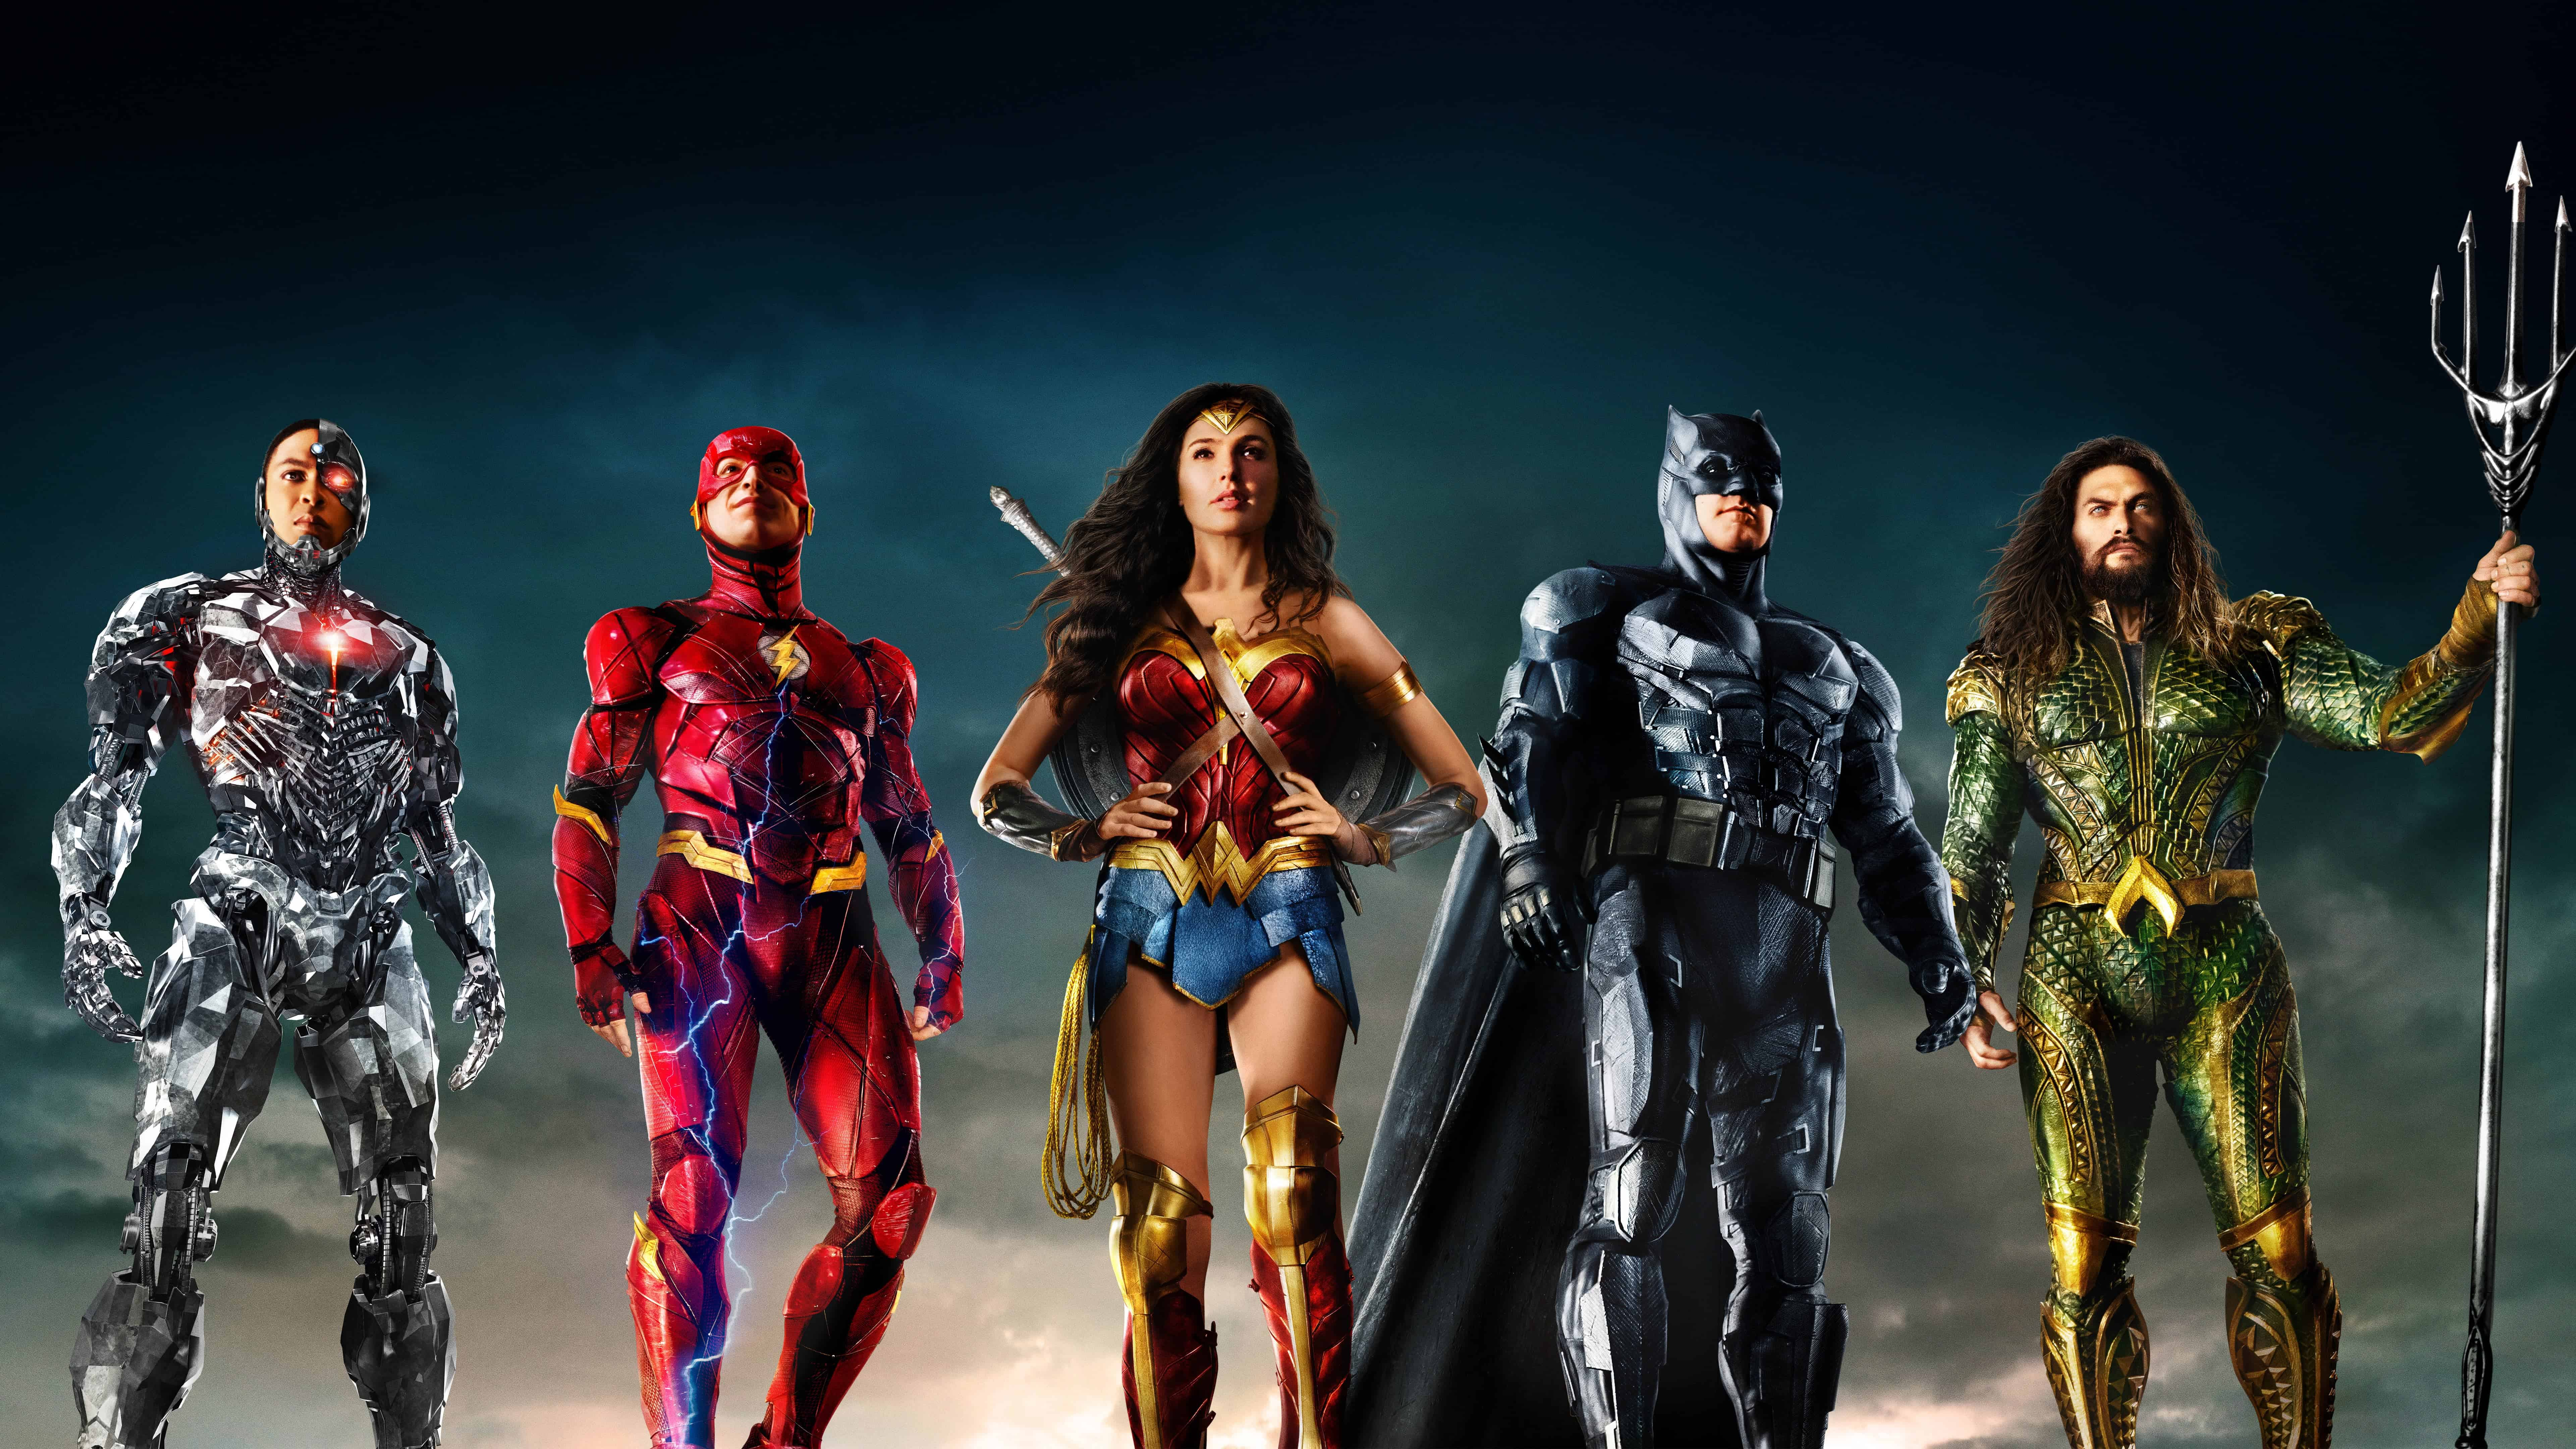 Related Images. justice league 2017 uhd 8k wallpaper